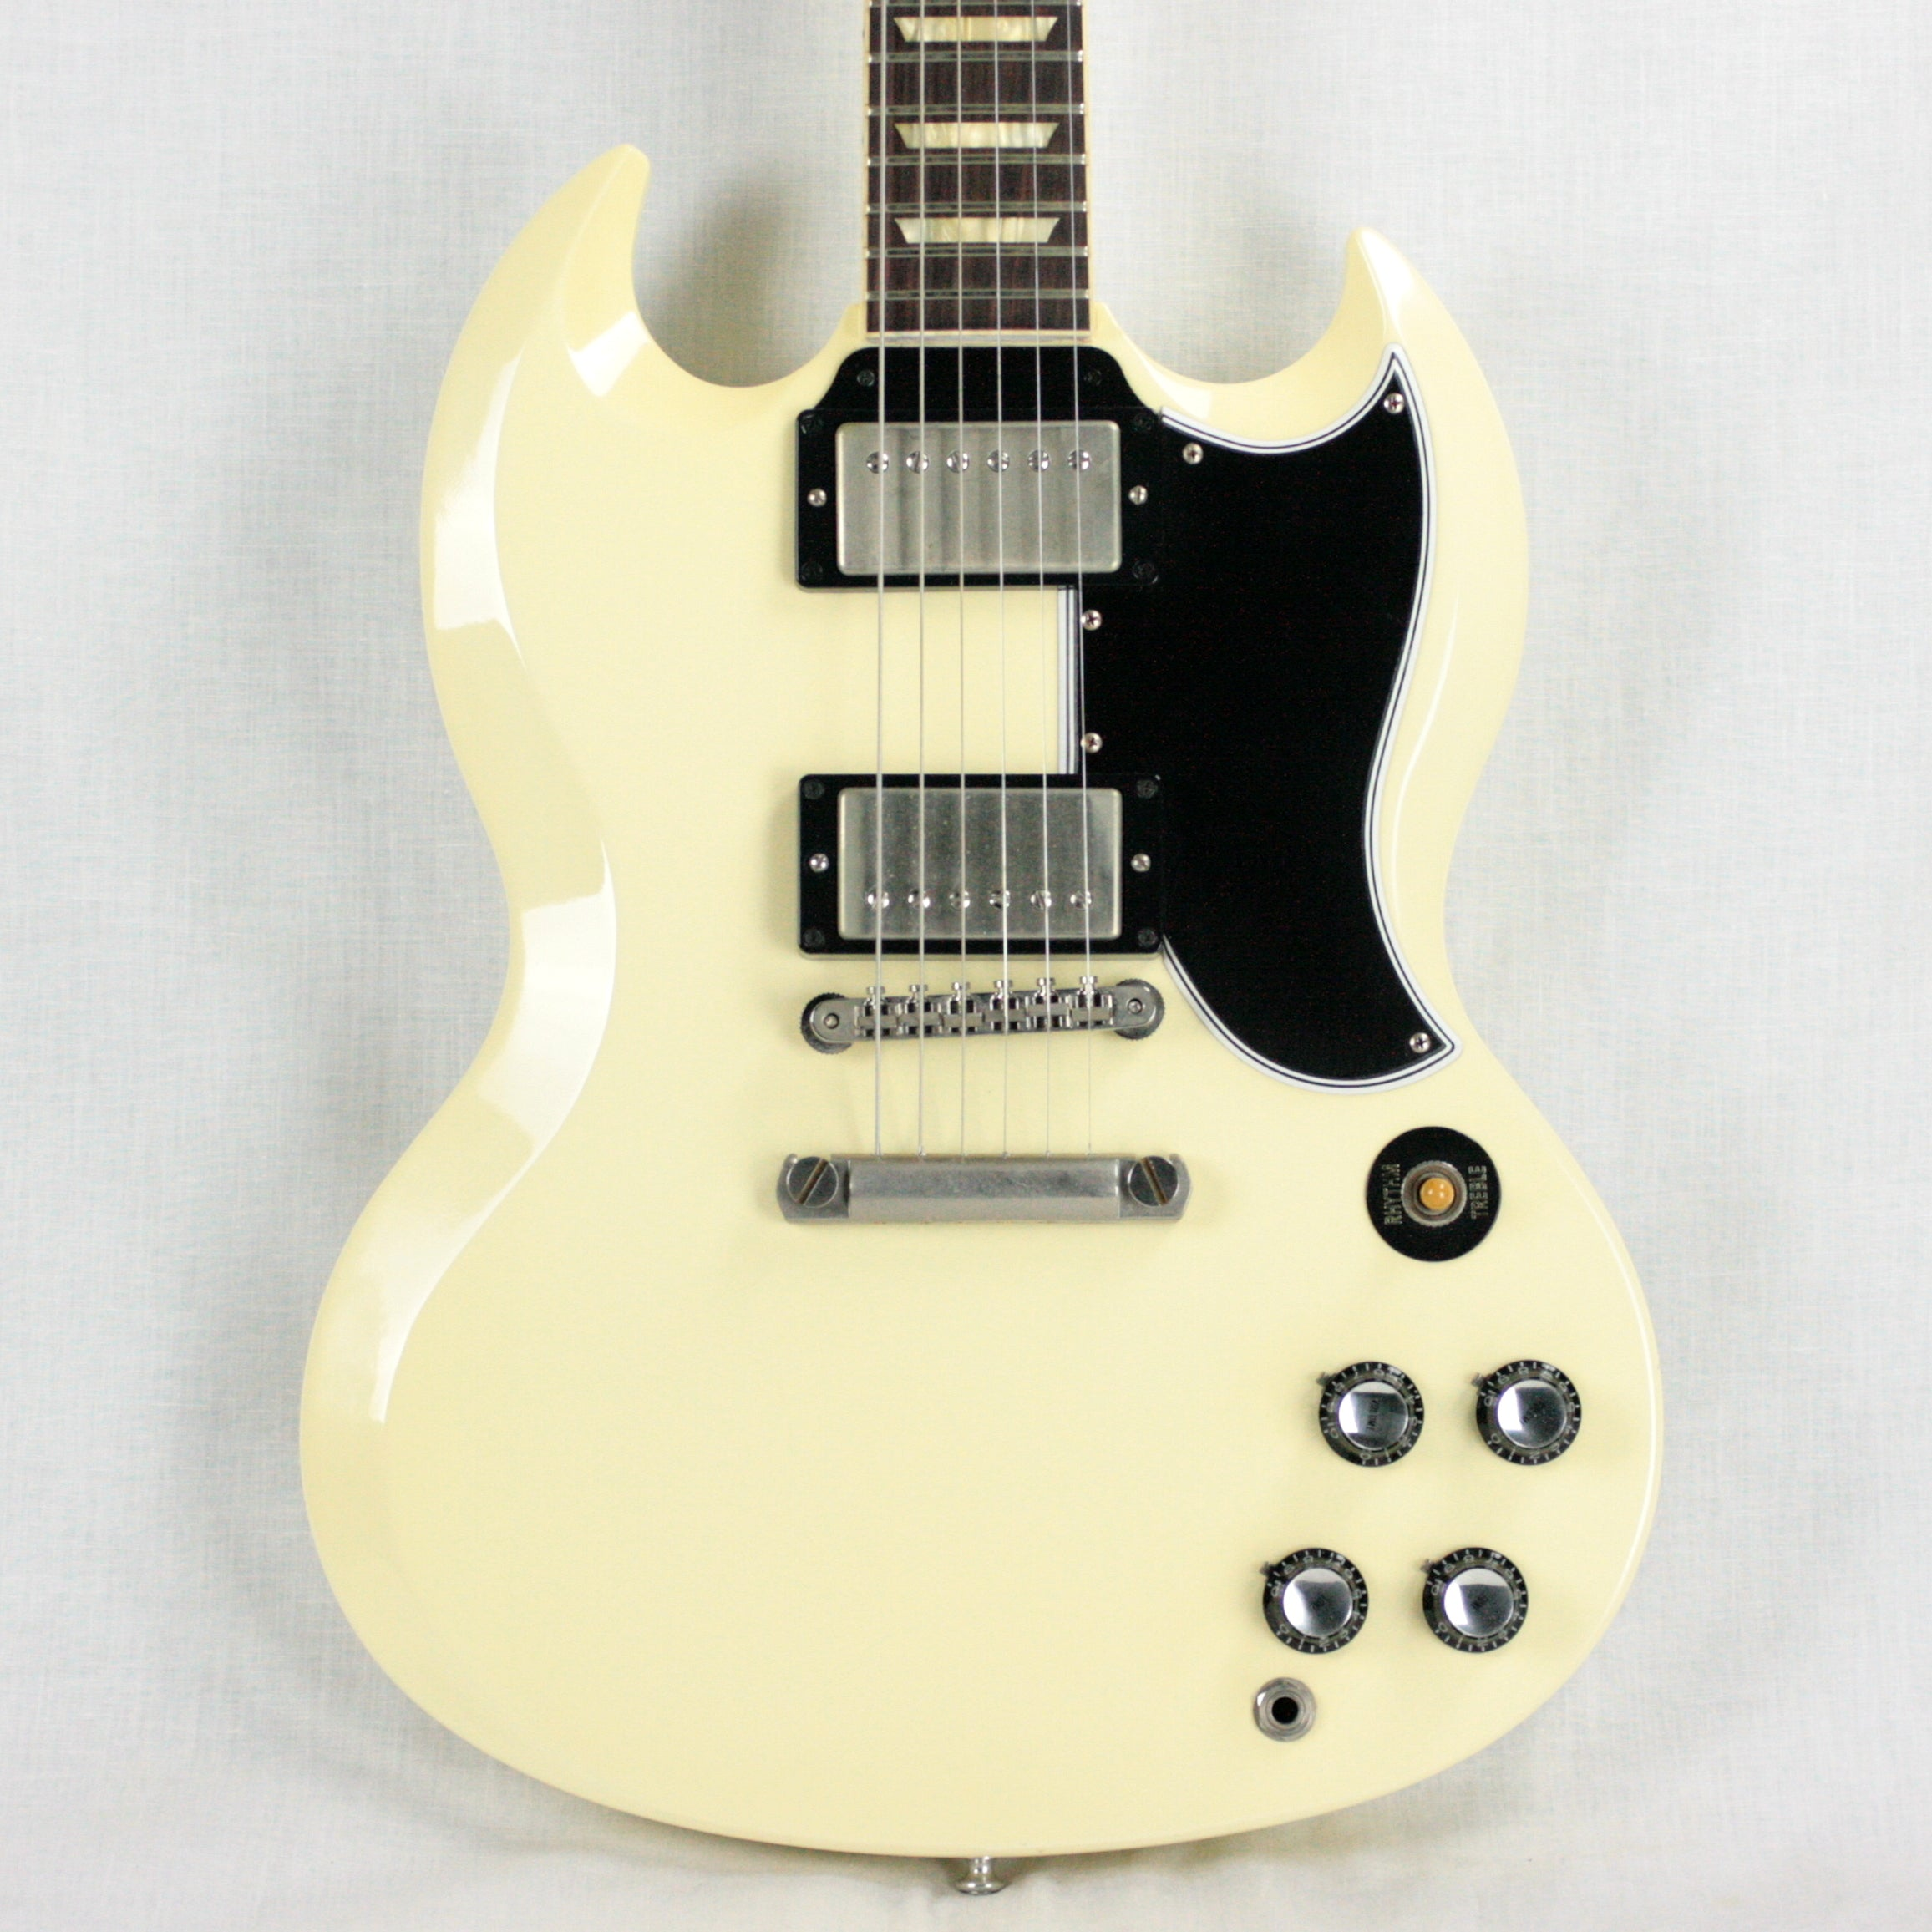 2013 Gibson Custom Shop Historic '61 Les Paul SG Standard White VOS Reissue 1961